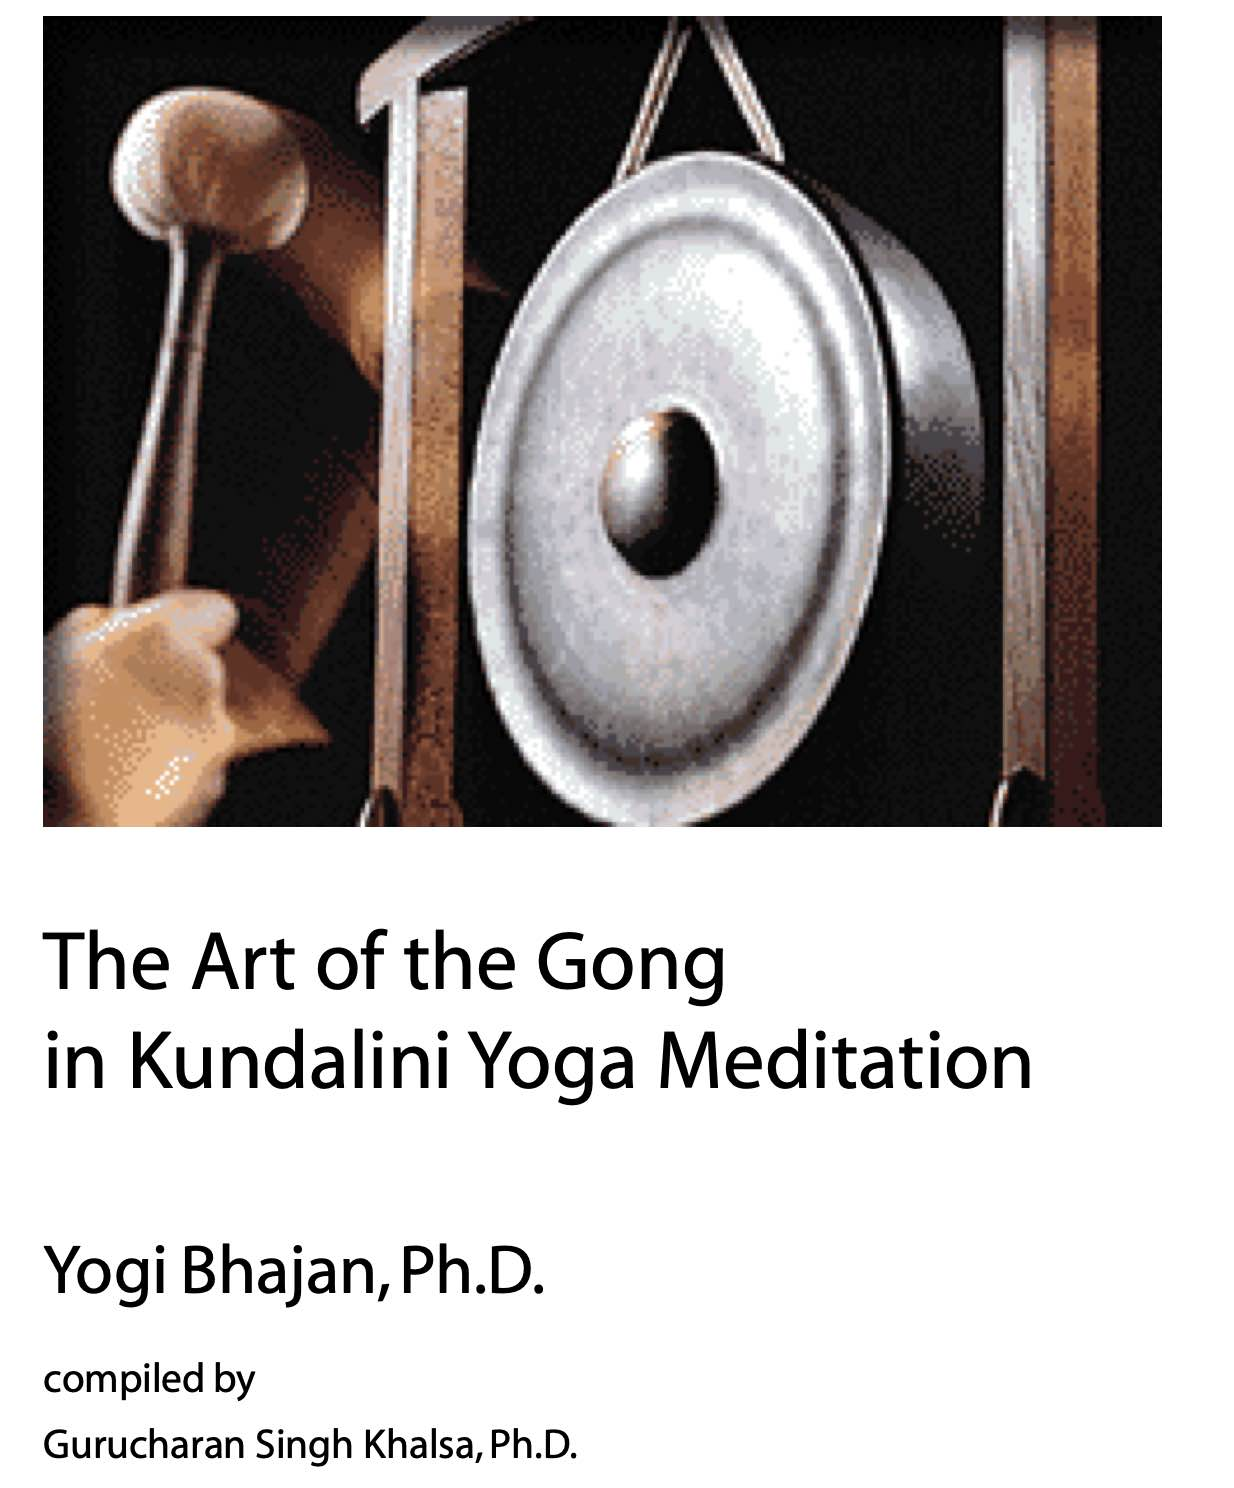 The Art of the Gong